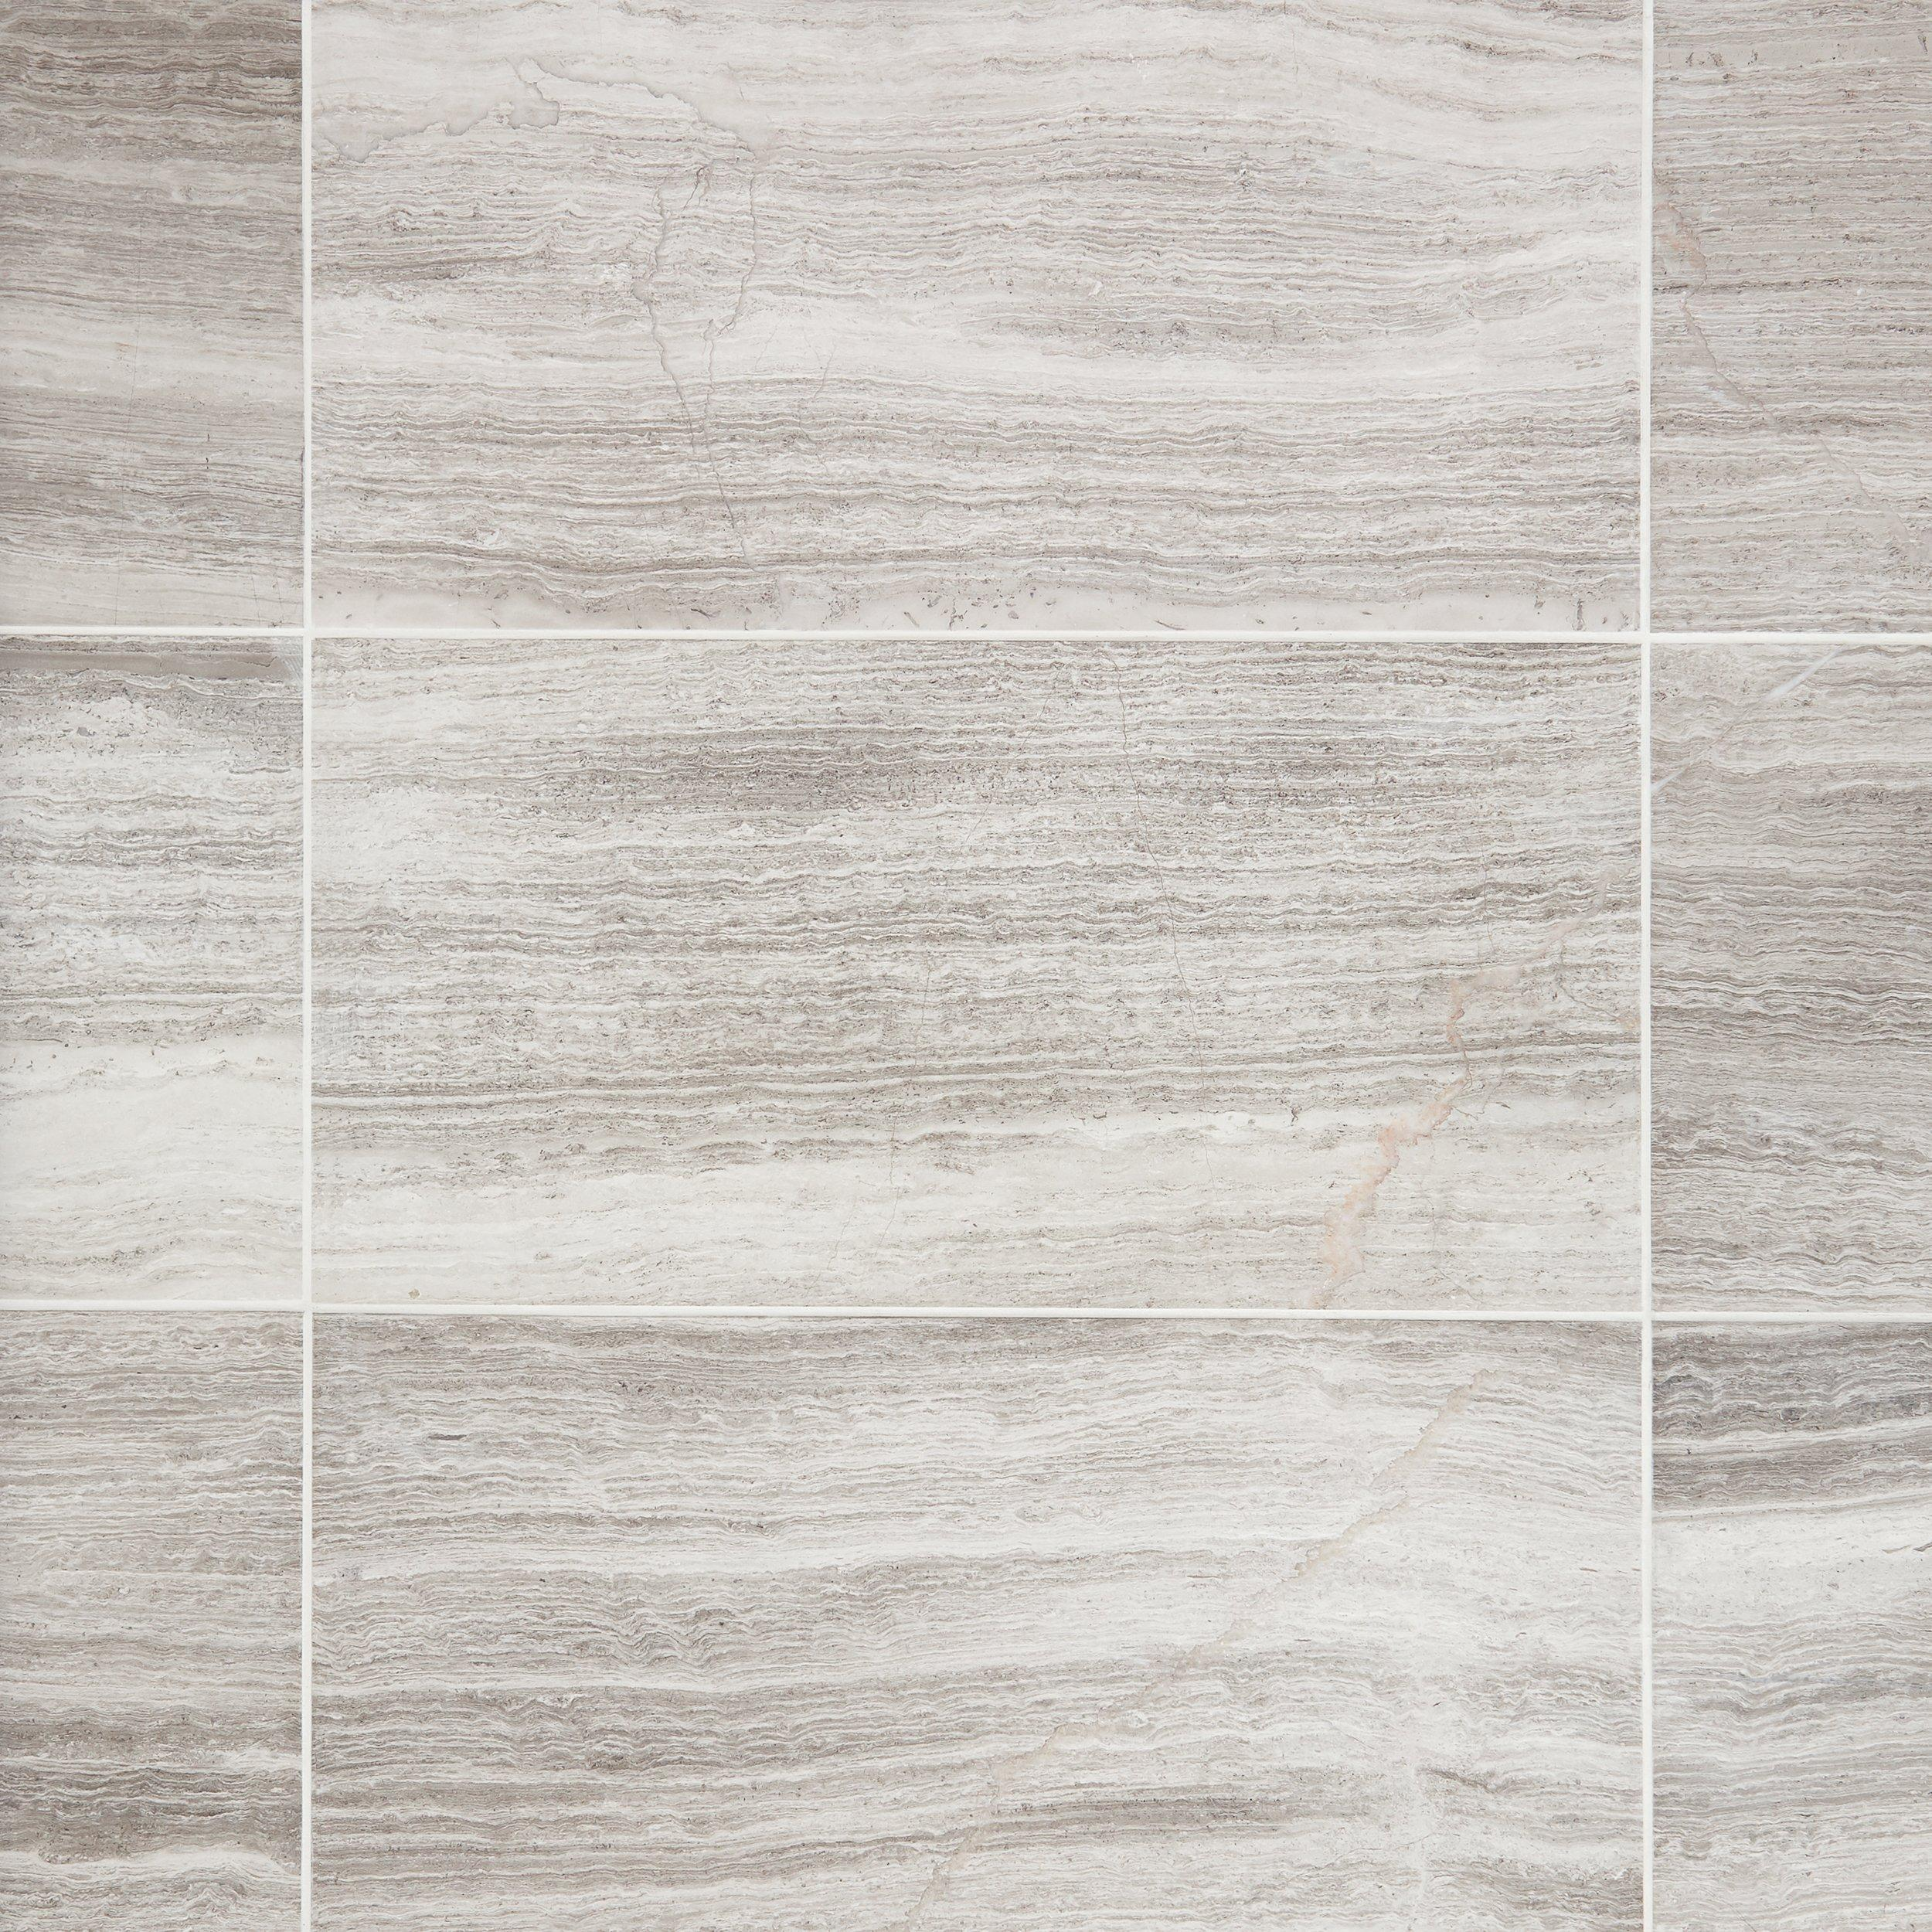 Valentino White Marble Tile 12 x 24 921100560 Floor and Decor